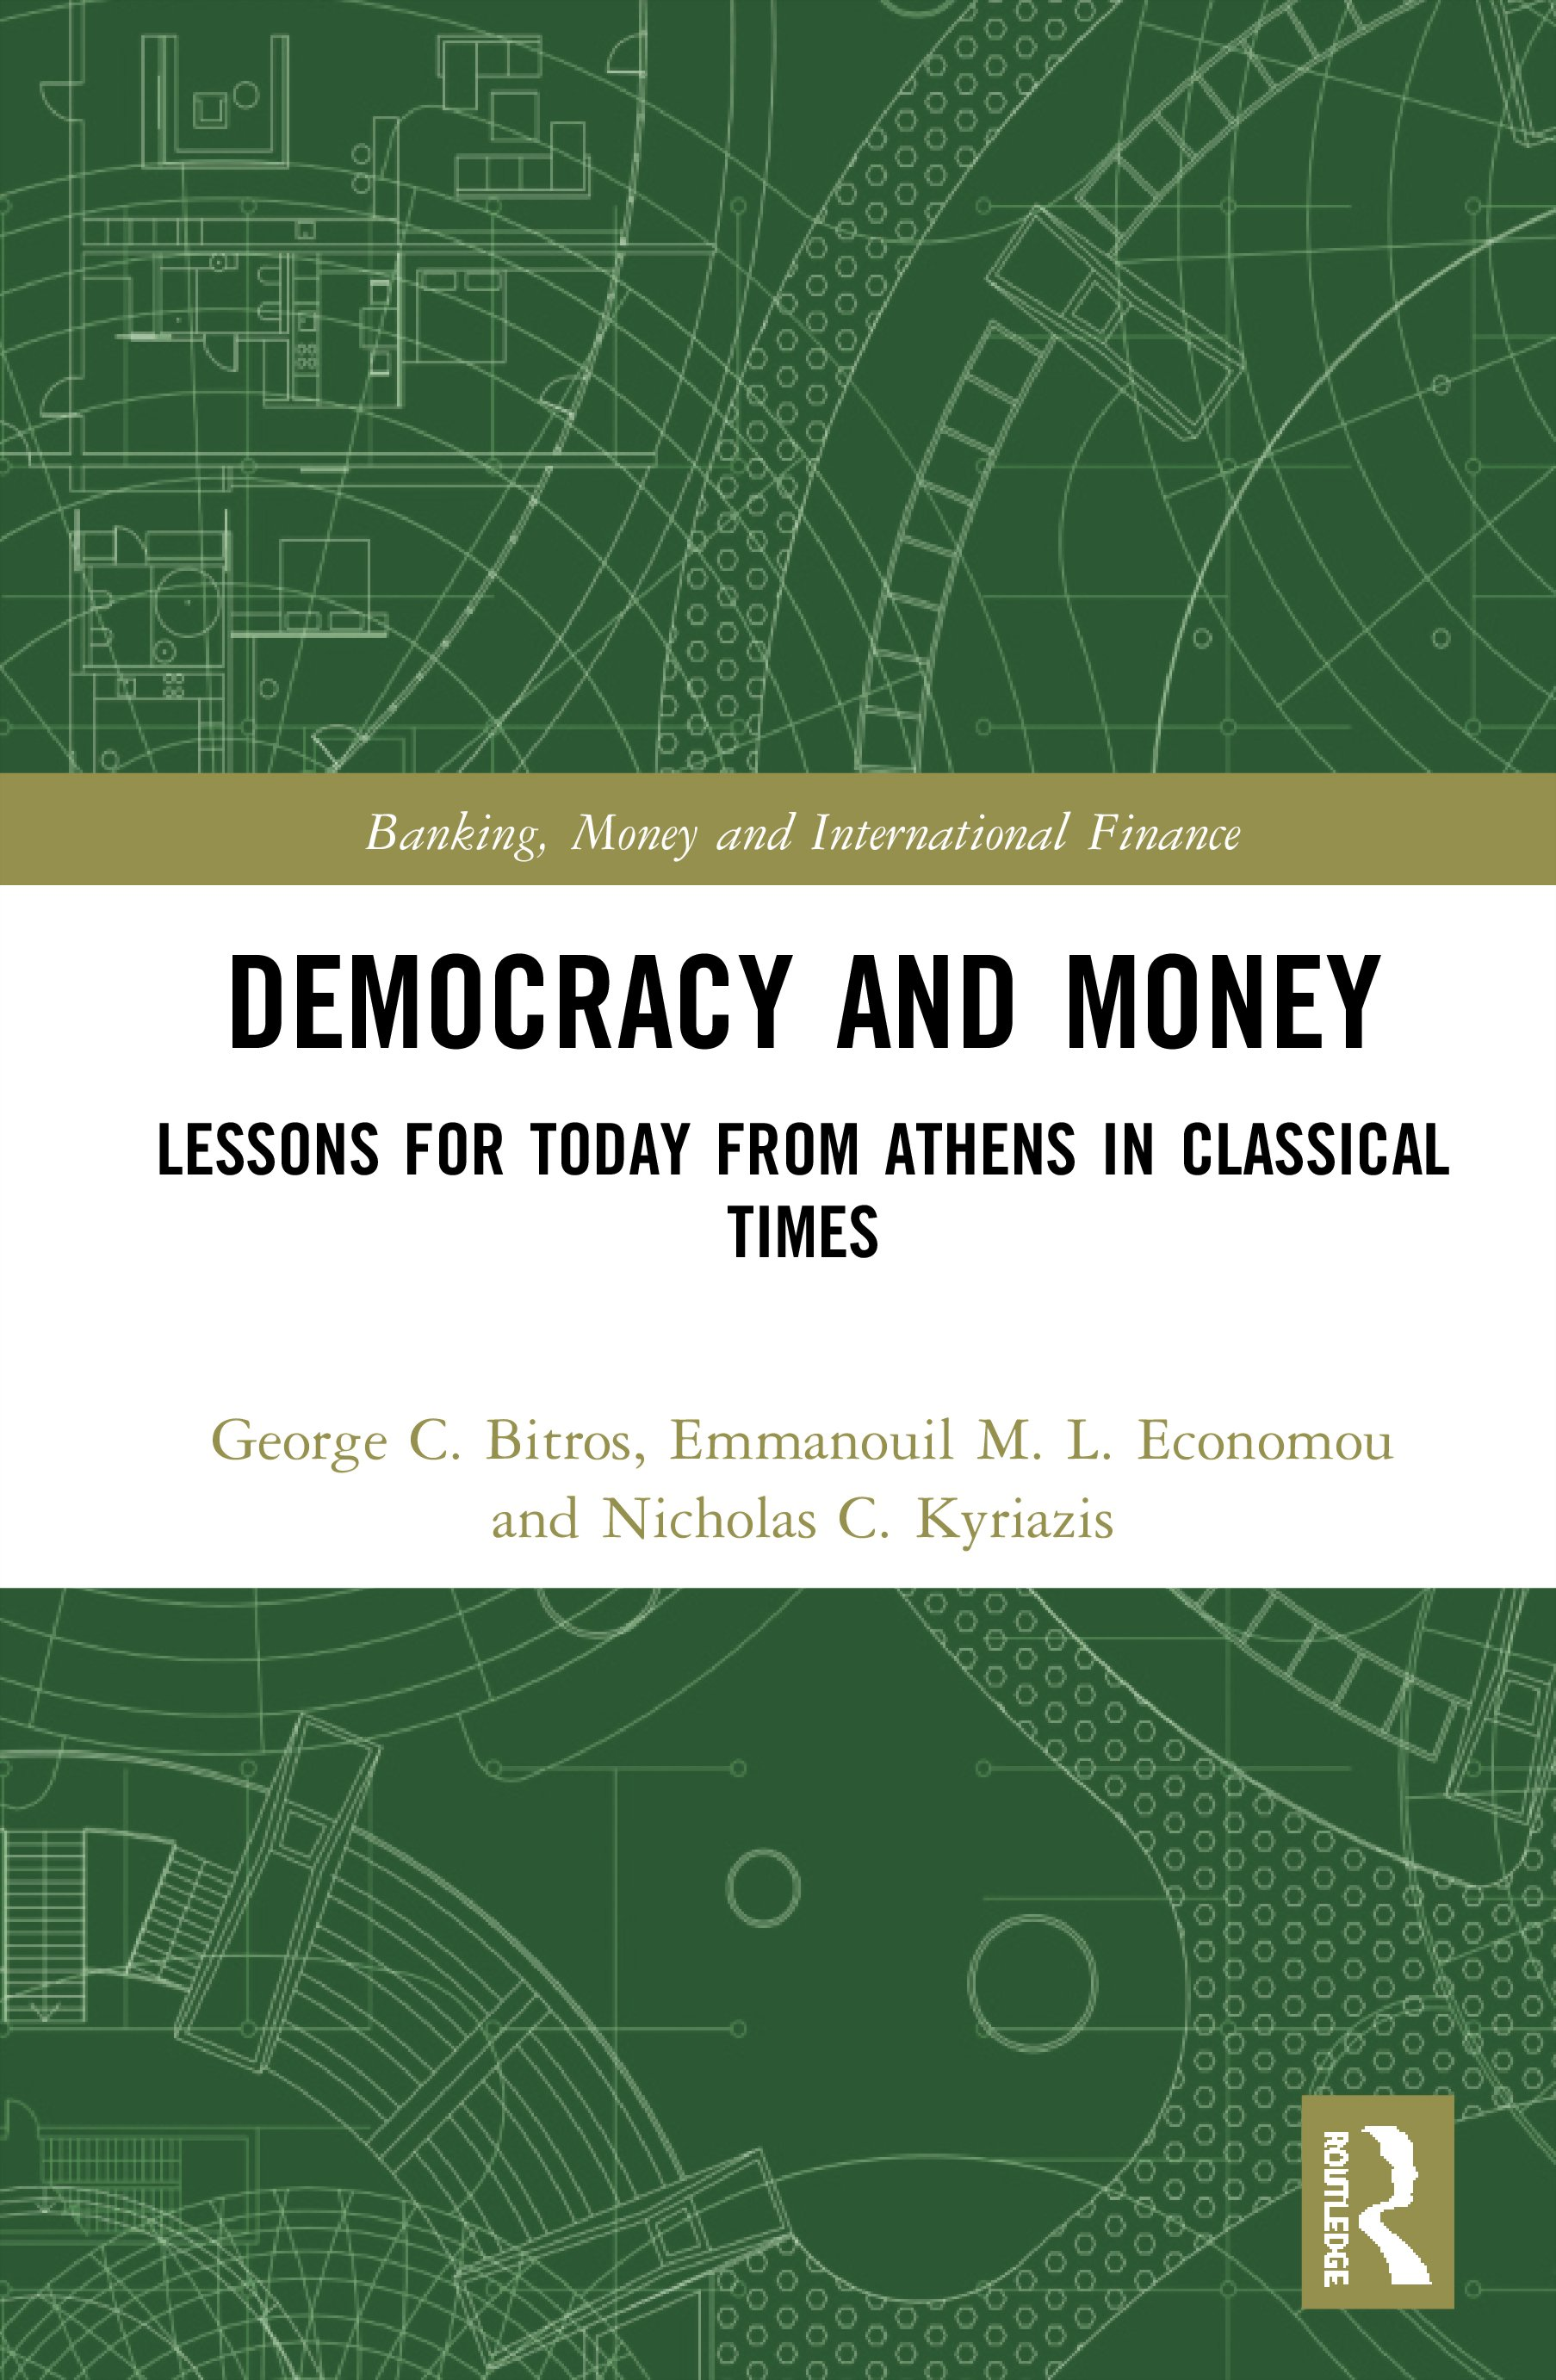 Democracy and Money: Lessons for Today from Athens in Classical Times, 1st Edition (Hardback) book cover